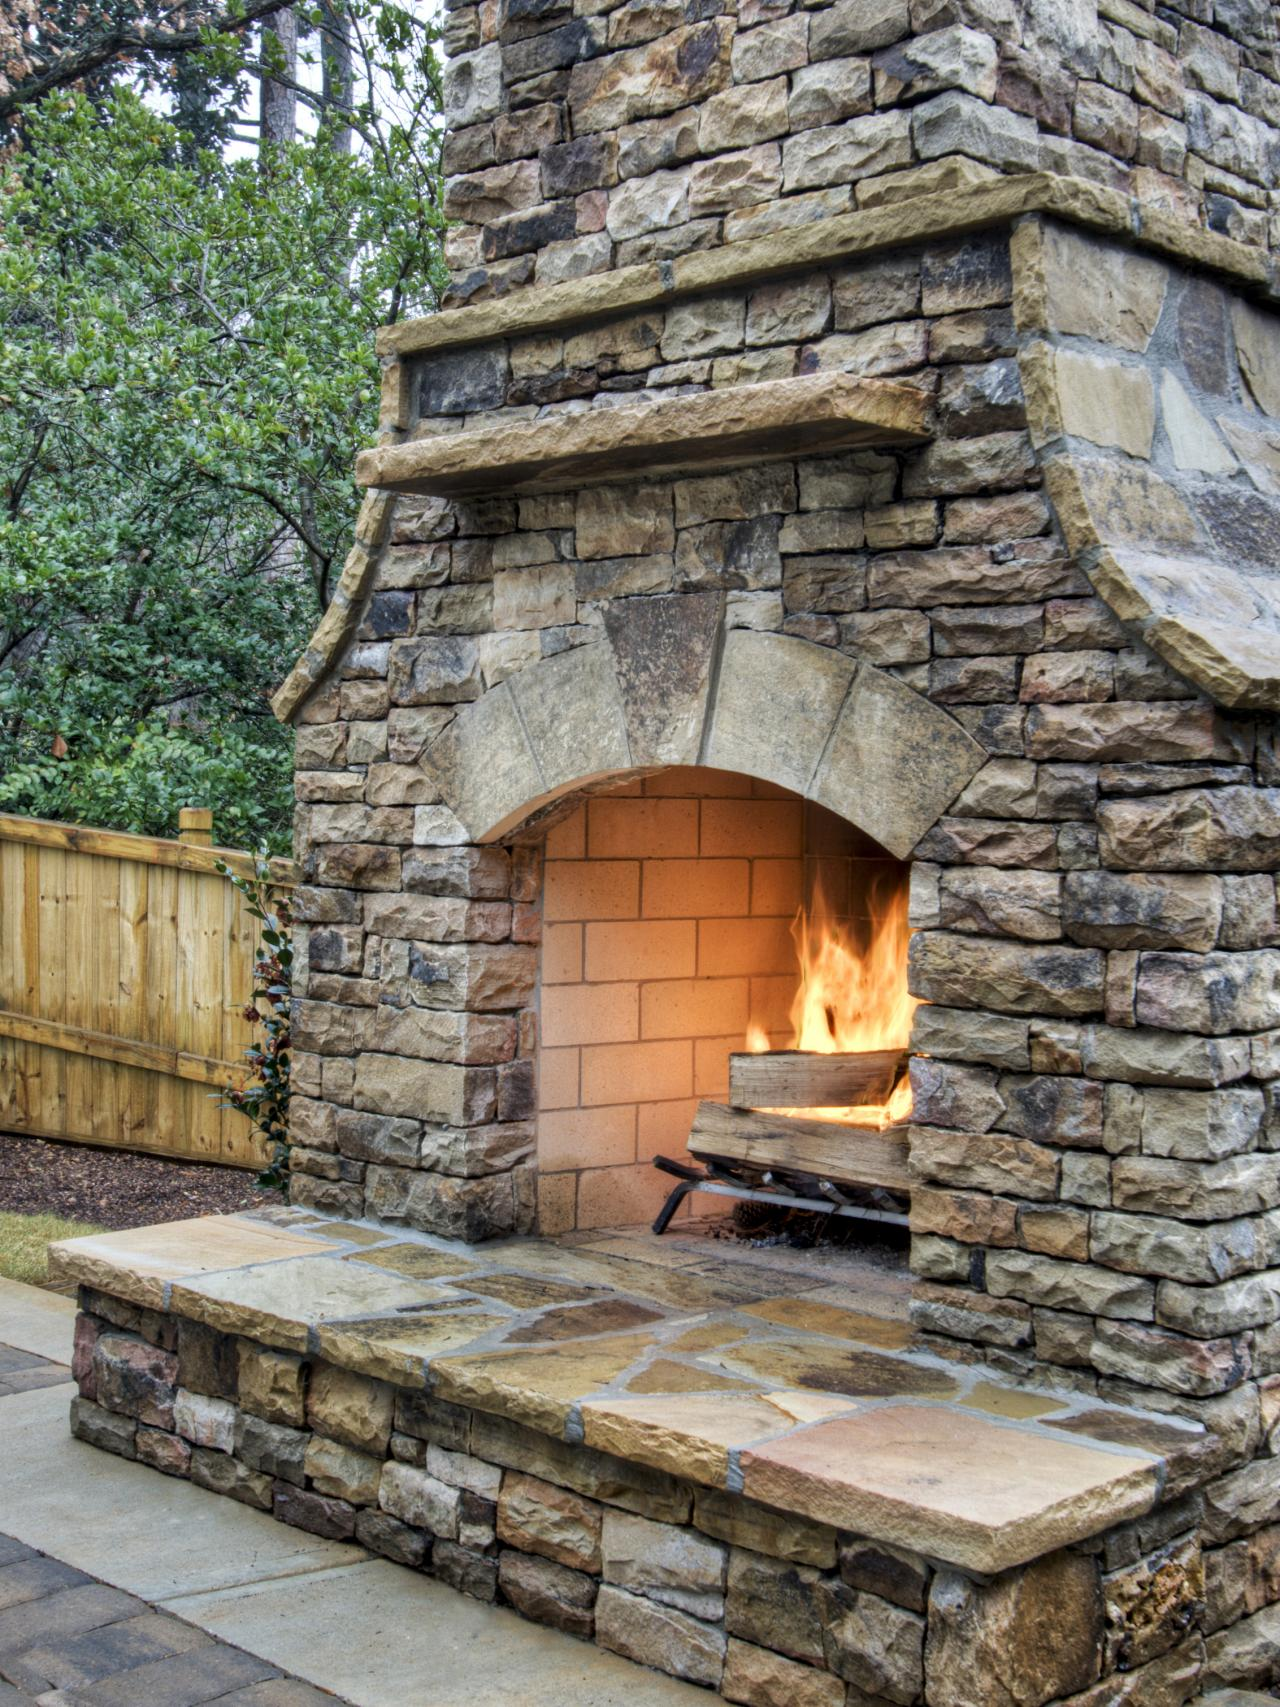 Fire Stones For Fireplace How To Build An Outdoor Stacked Stone Fireplace Hgtv